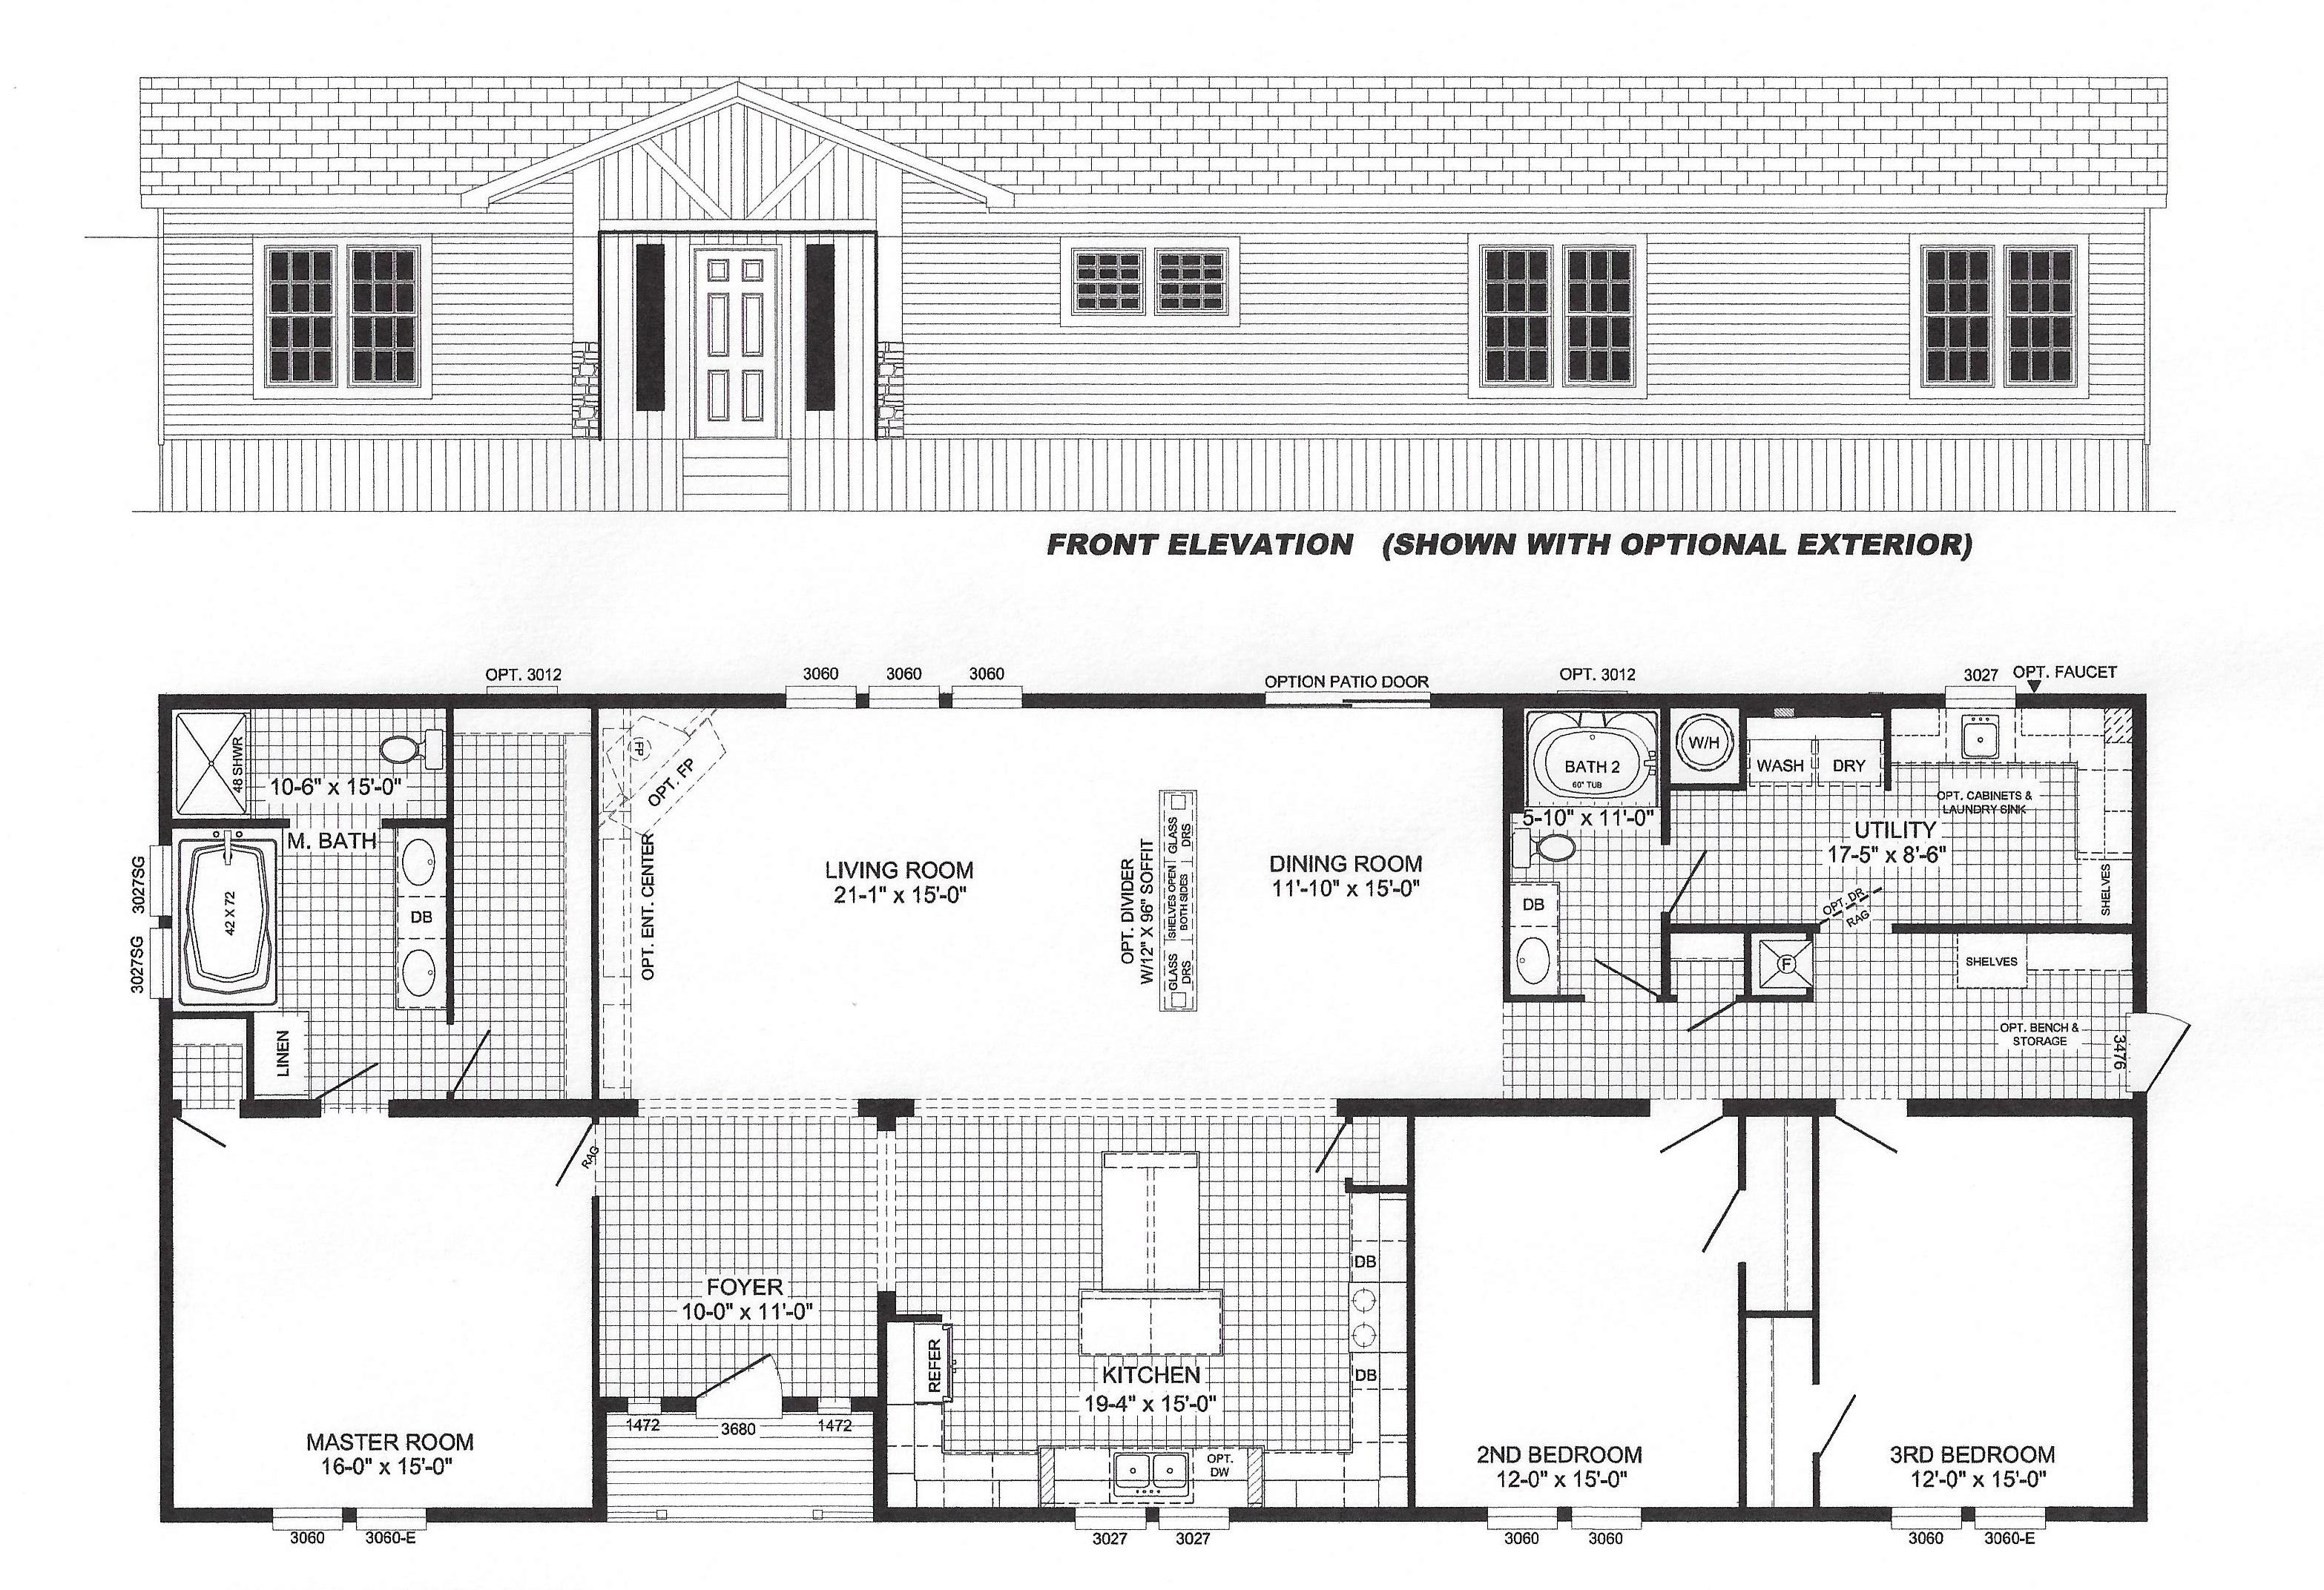 3 bedroom floor plan b 6017 hawks homes manufactured for 3 bedroom modular home floor plans